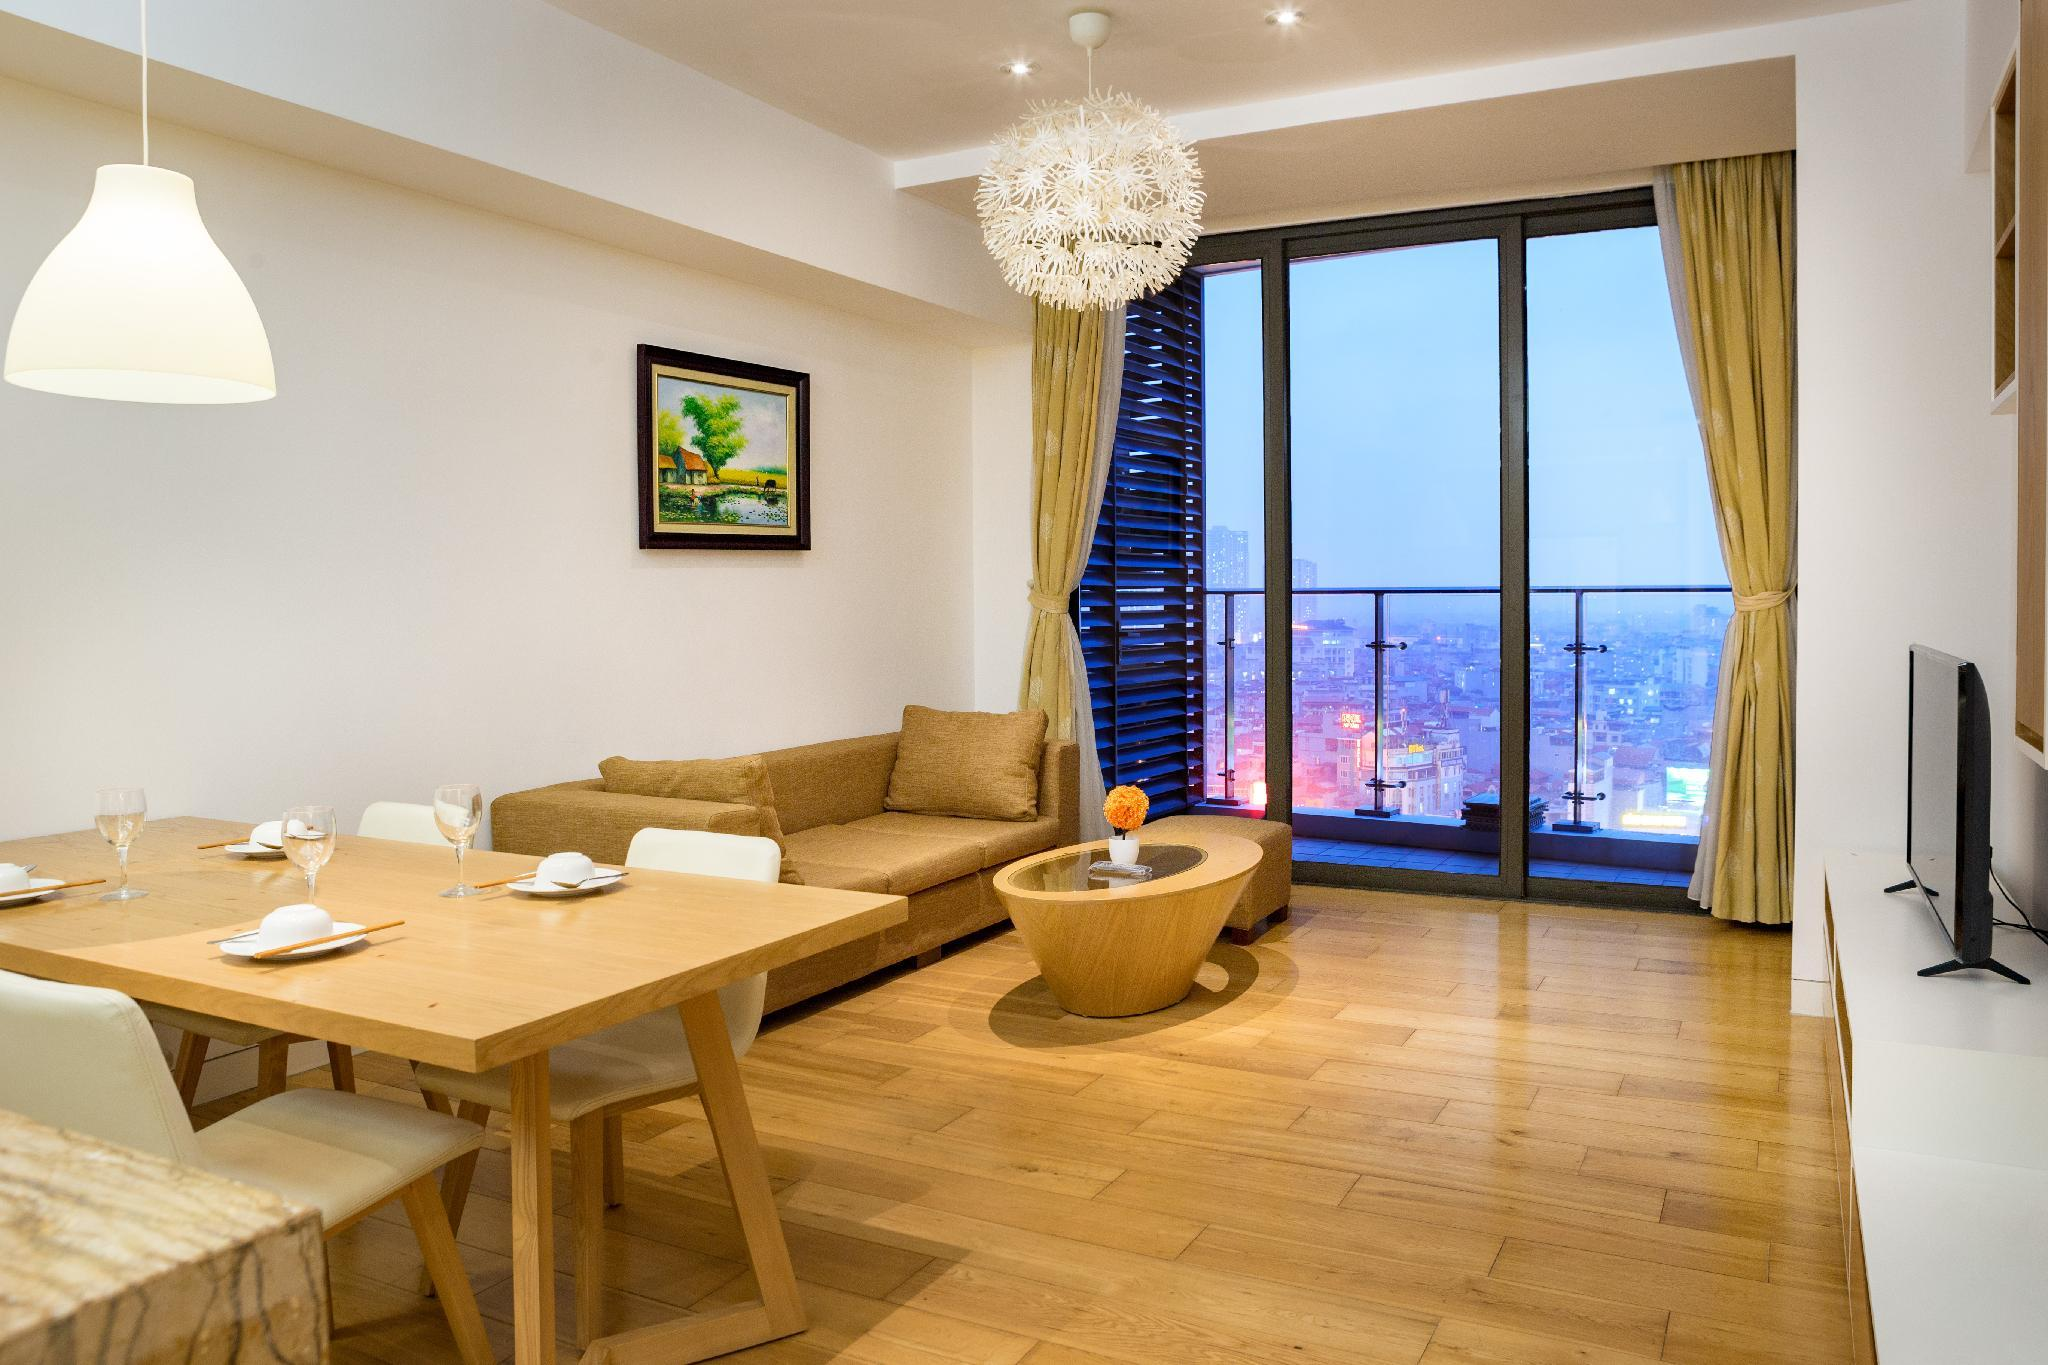 Luxury Vacation At IPH Apartment